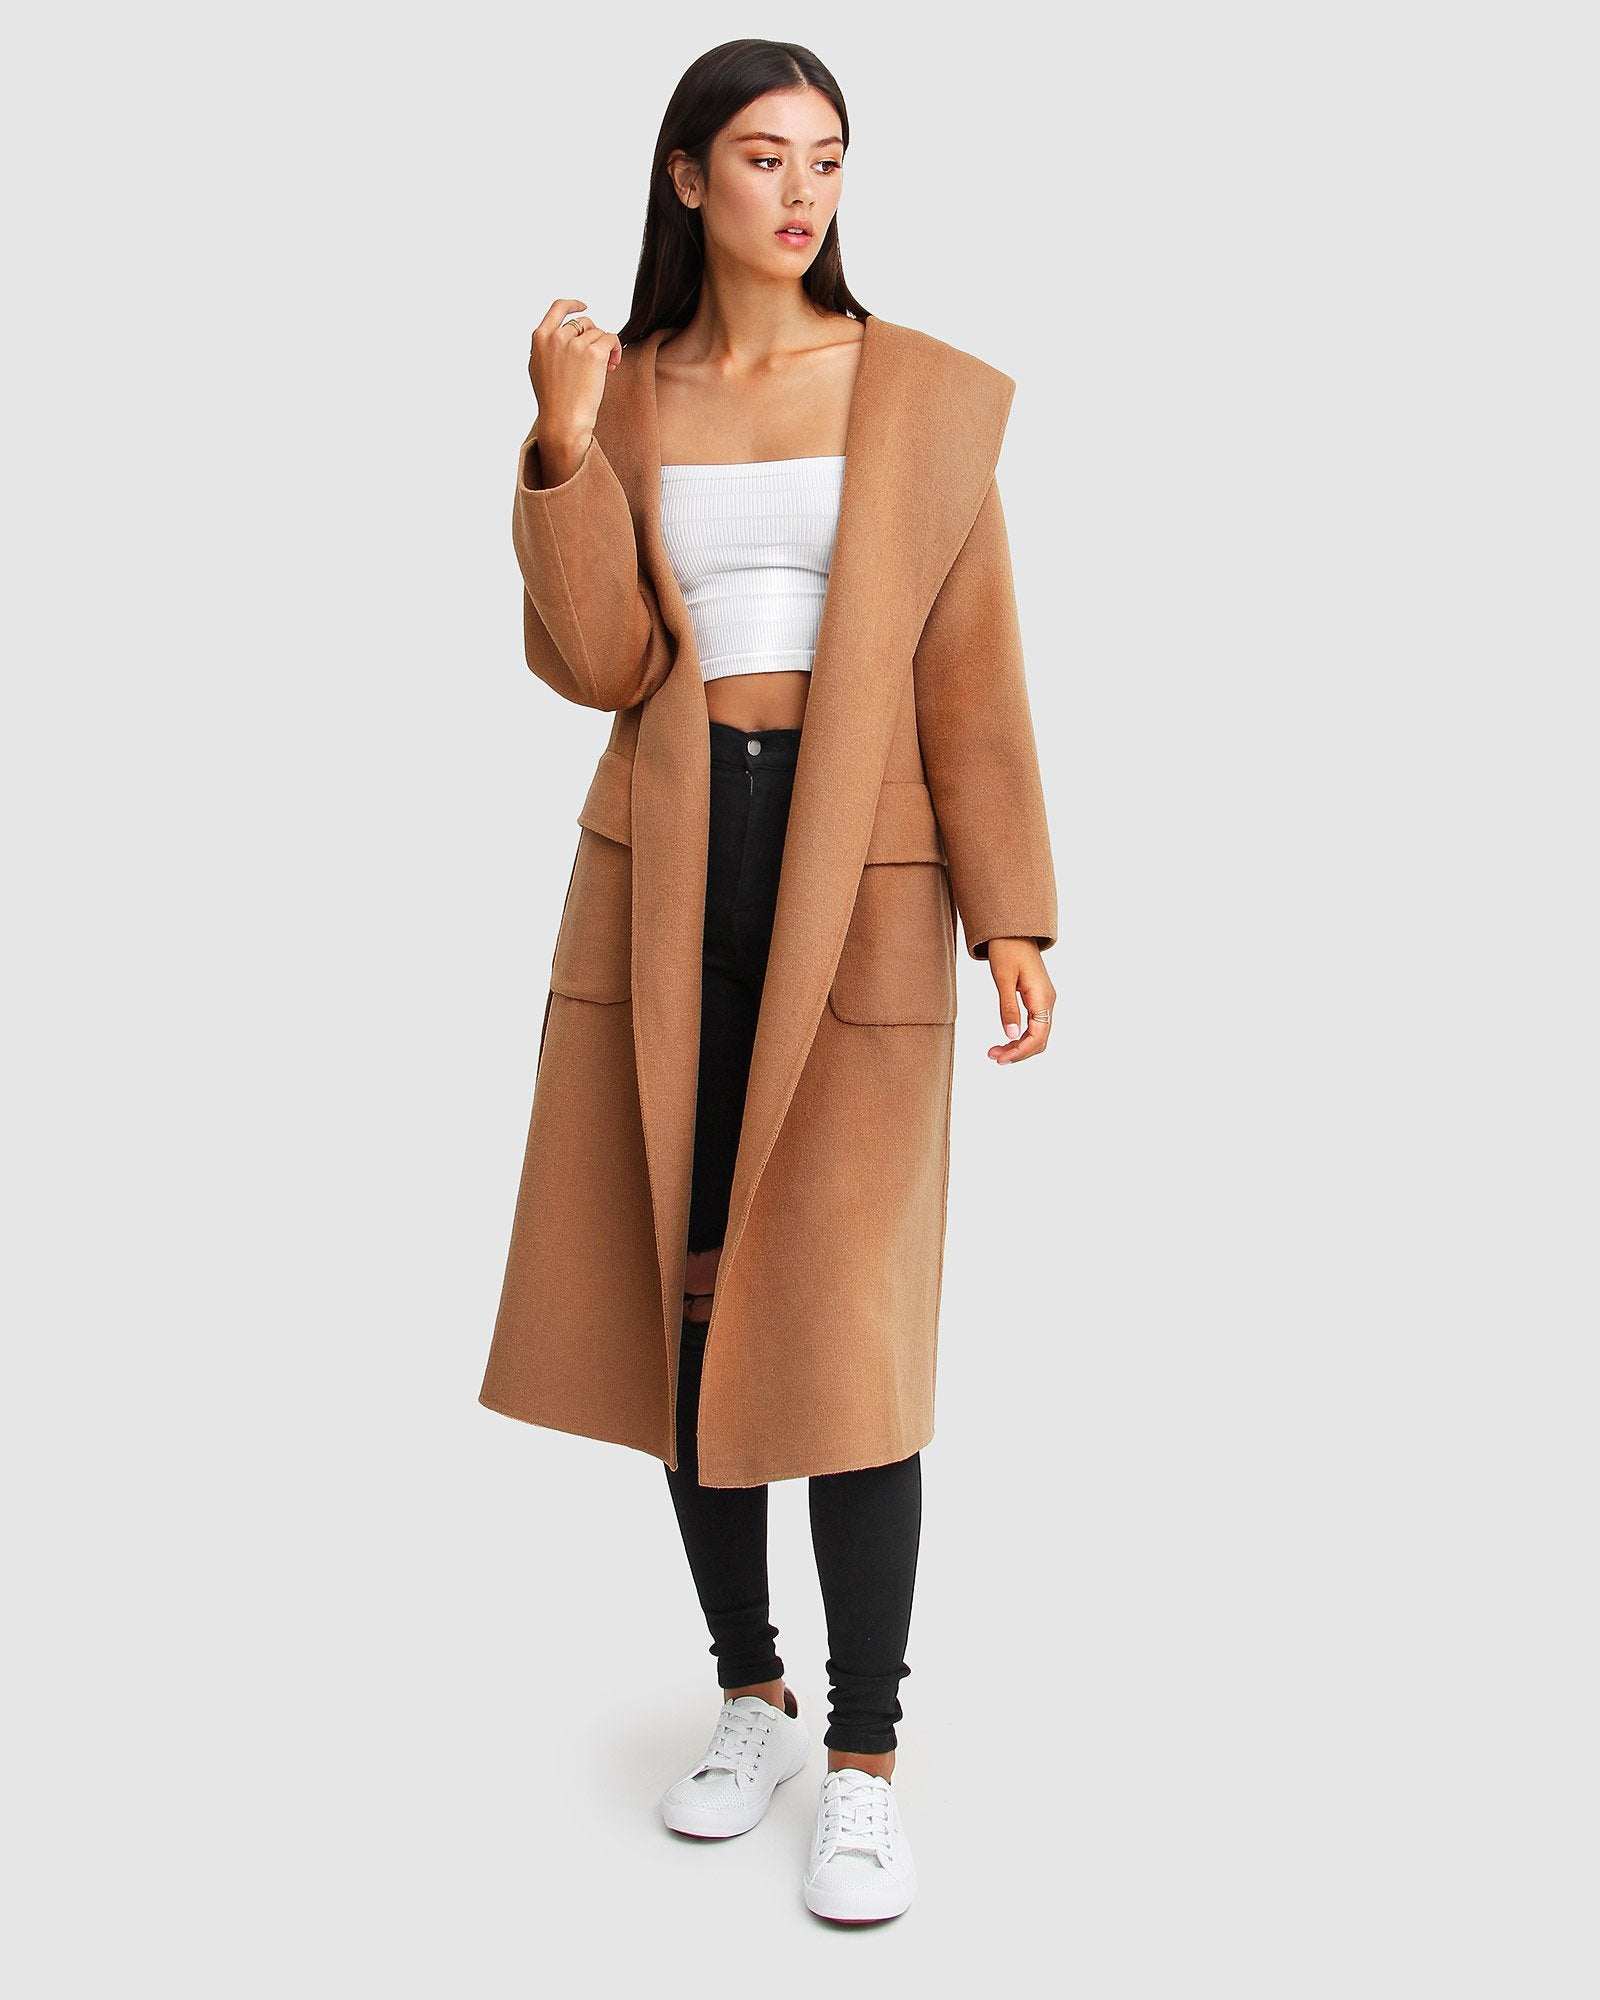 Runaway Wool Blend Robe Coat - Dark Camel